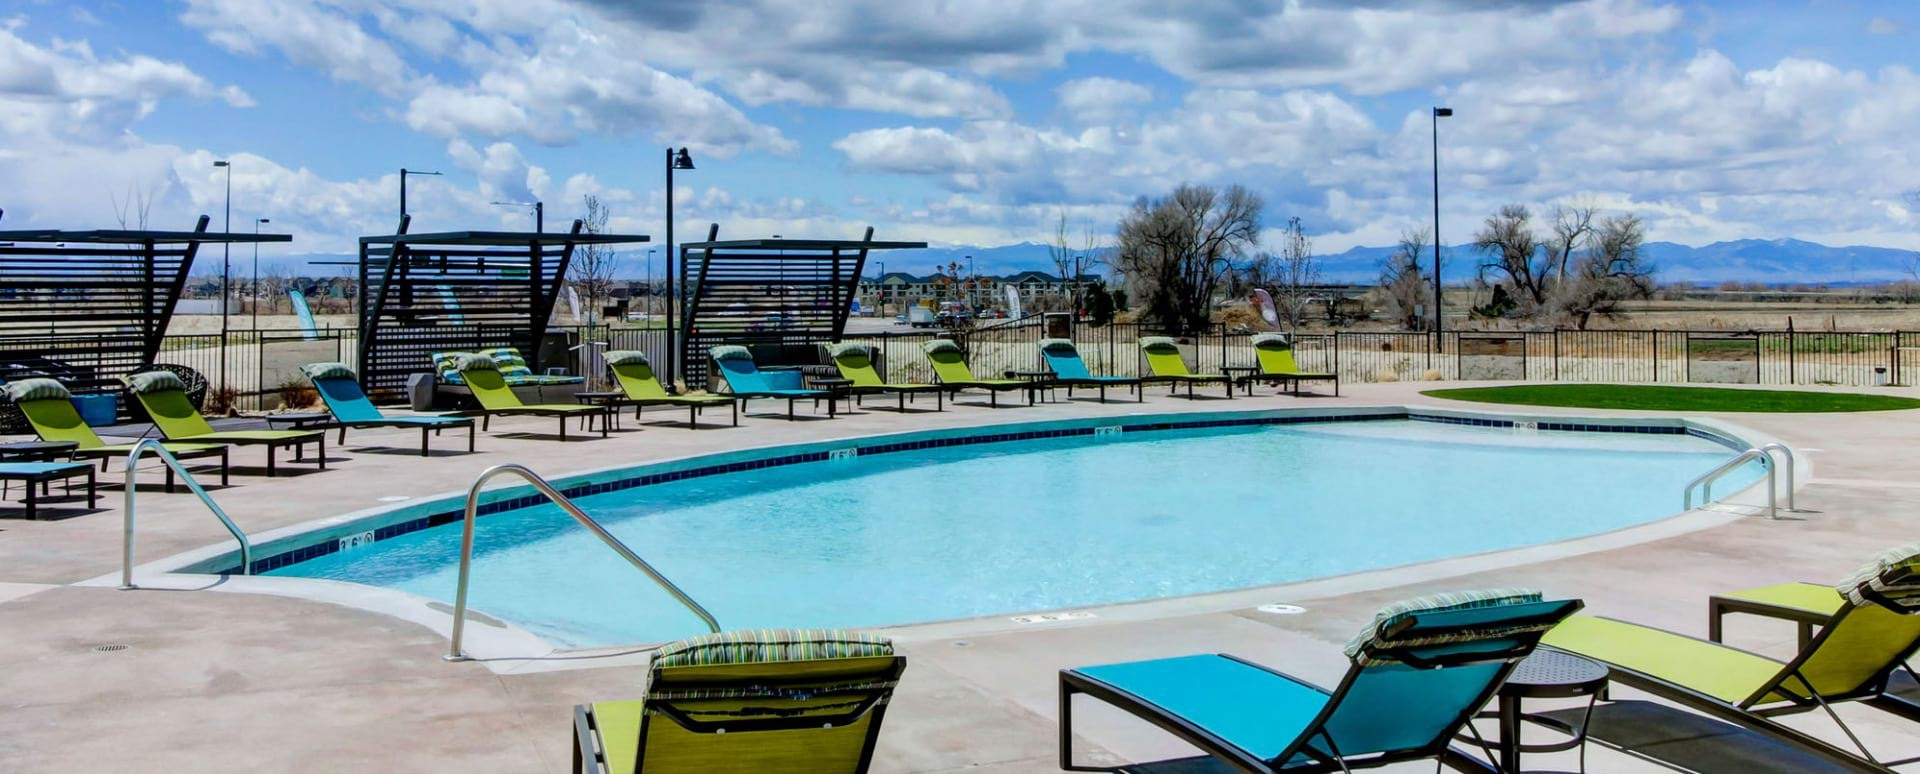 Our Northeast Denver Apartment Pool with Heated Spa